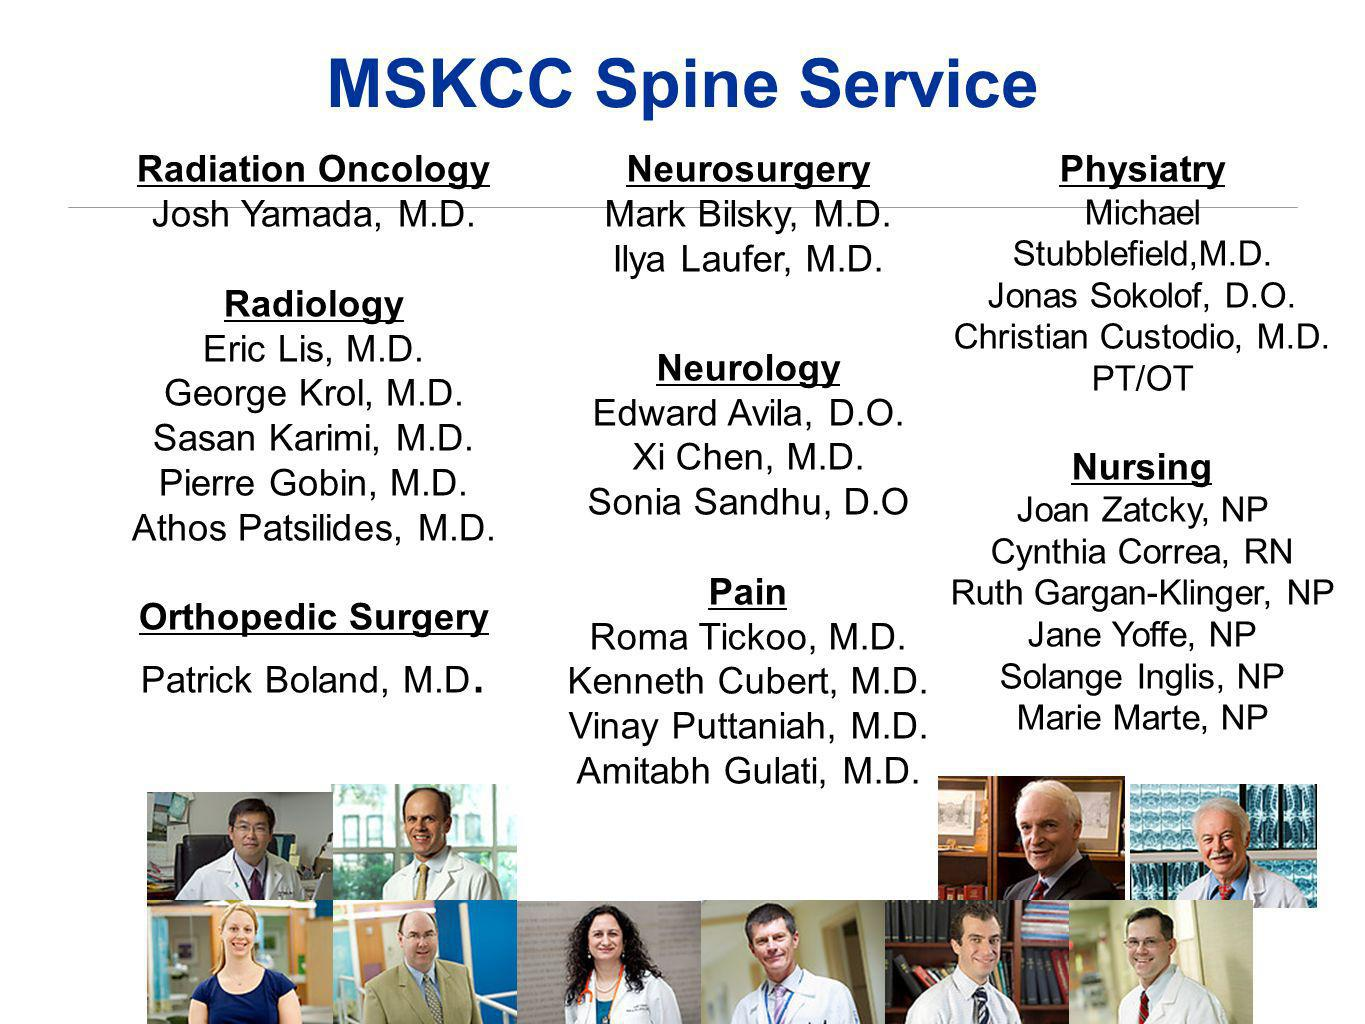 MSKCC Spine Service Radiation Oncology Josh Yamada, M.D. Radiology